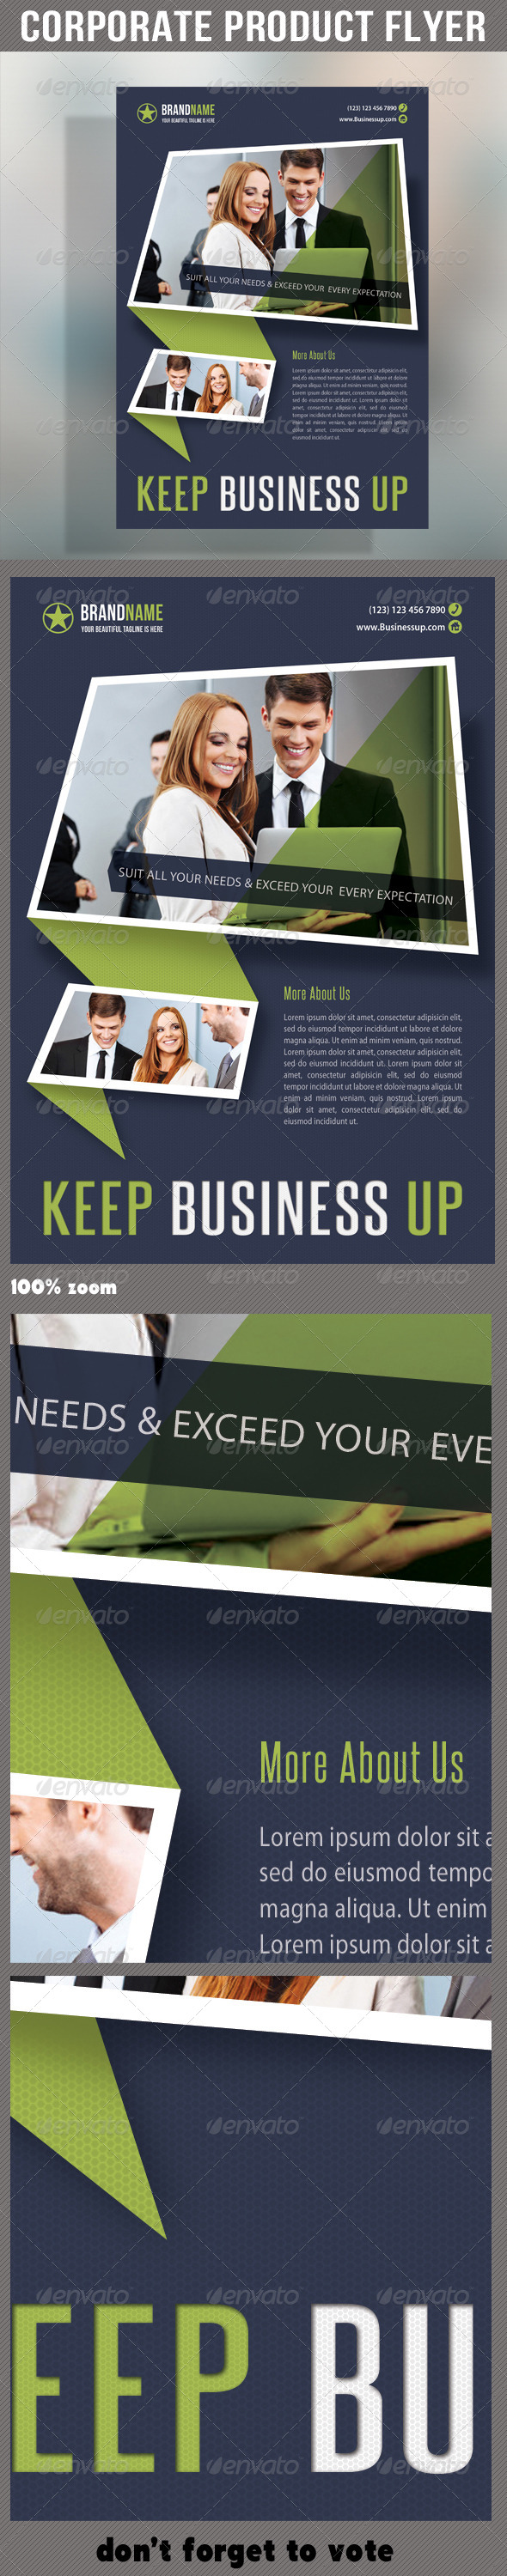 GraphicRiver Corporate Product Flyer 52 6255011